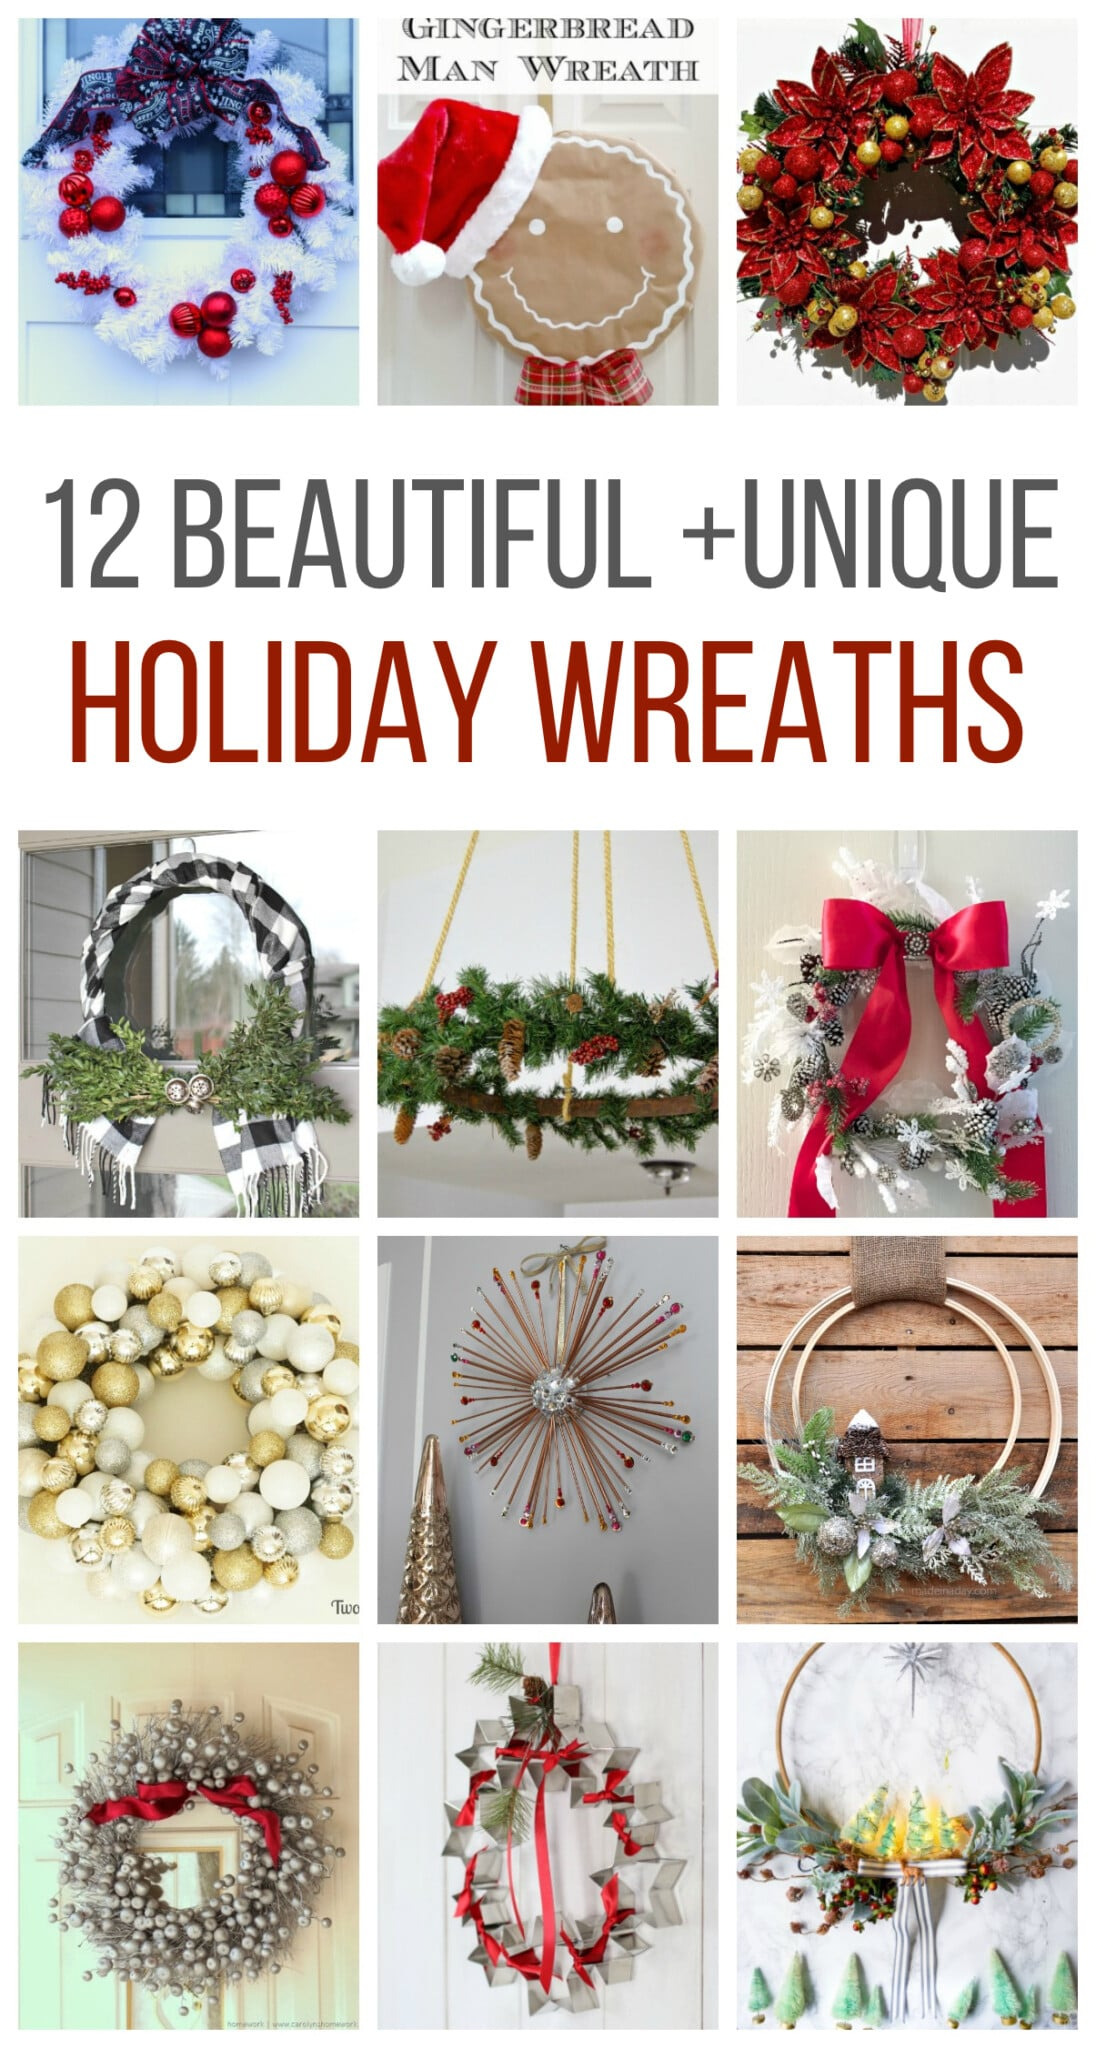 12 Beautiful and Unique Holiday Wreaths